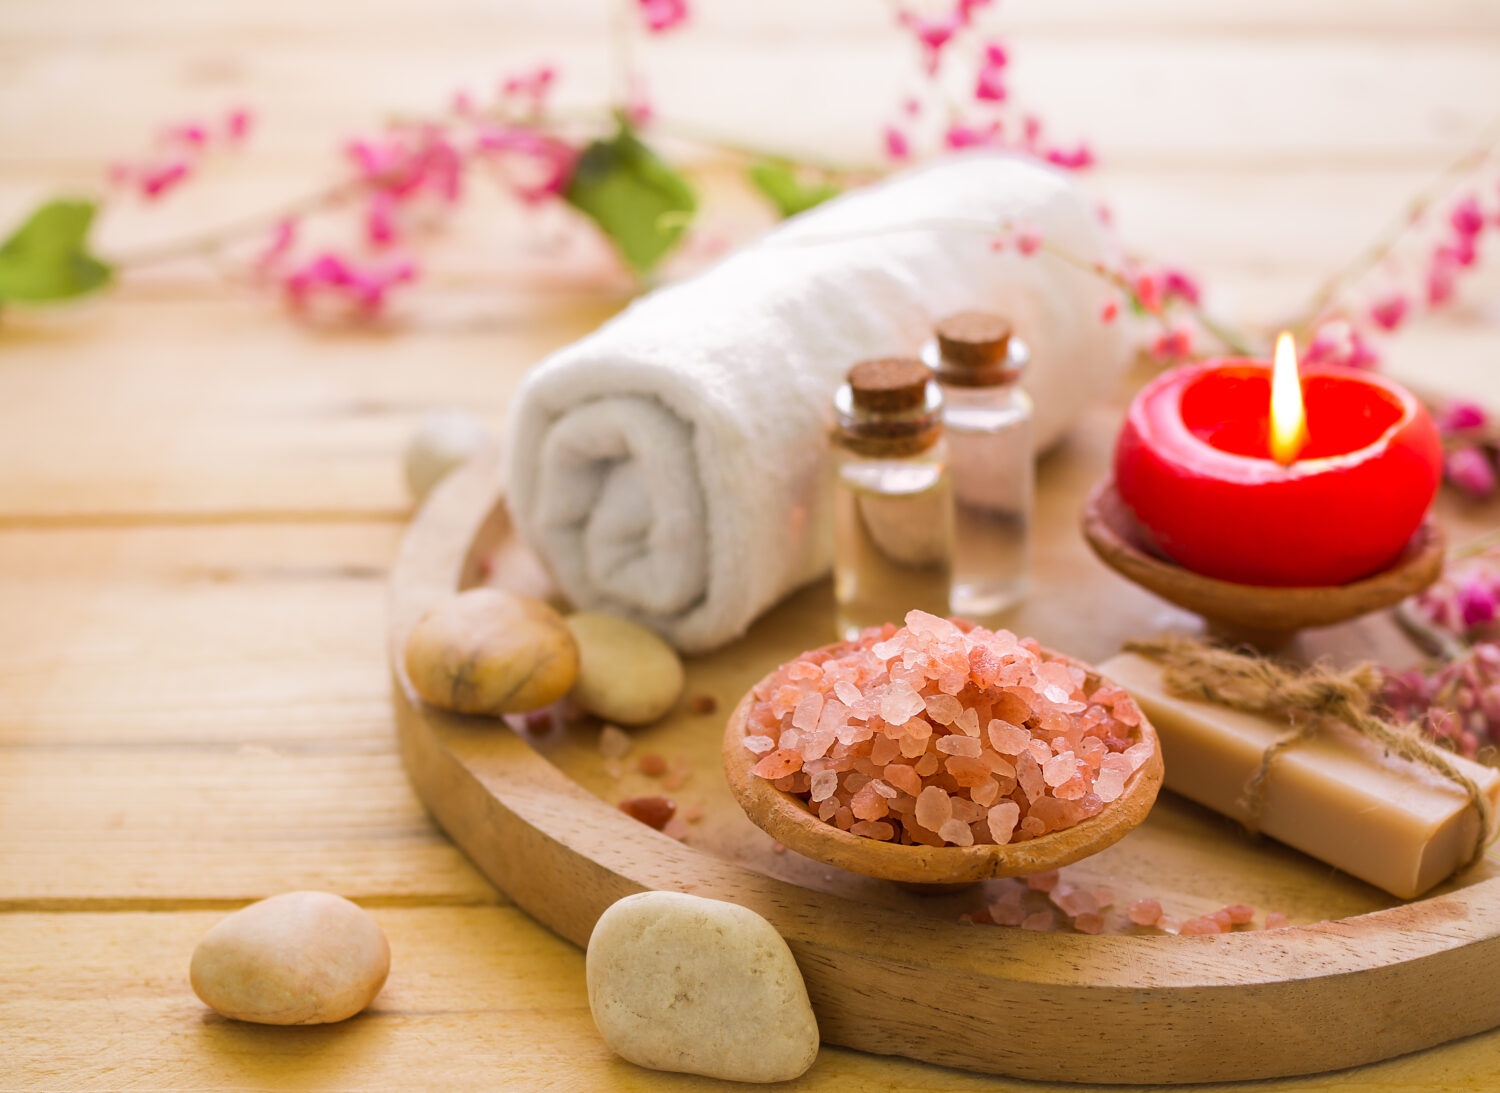 aromatherapy set sitting on a wooden table surrounded by flowers